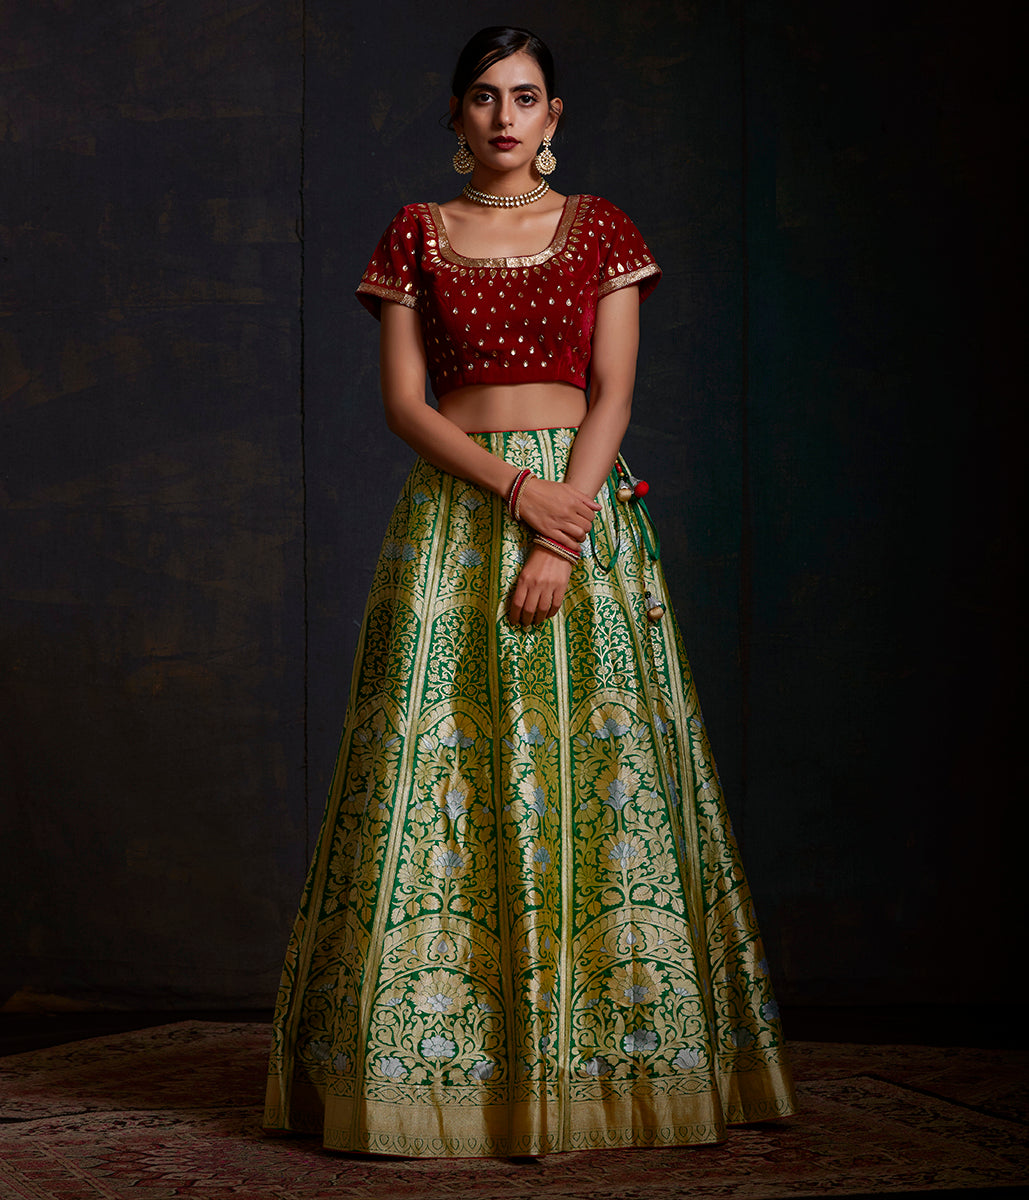 Handwoven Banarasi Katan Silk Lehenga in emerald green